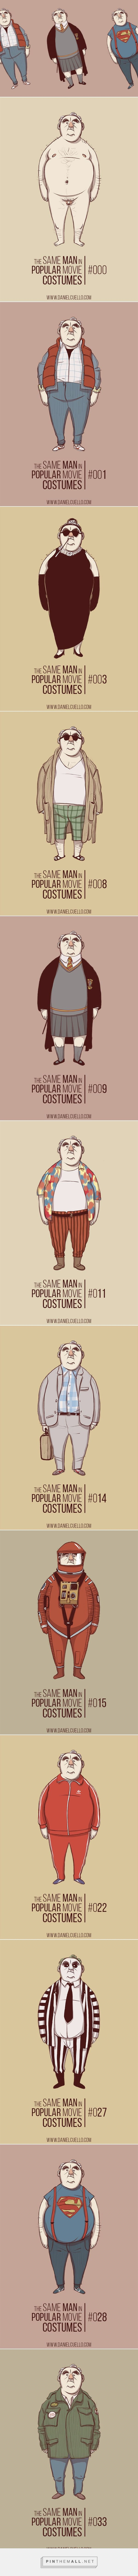 The Same Man in Popular Movie Costumes